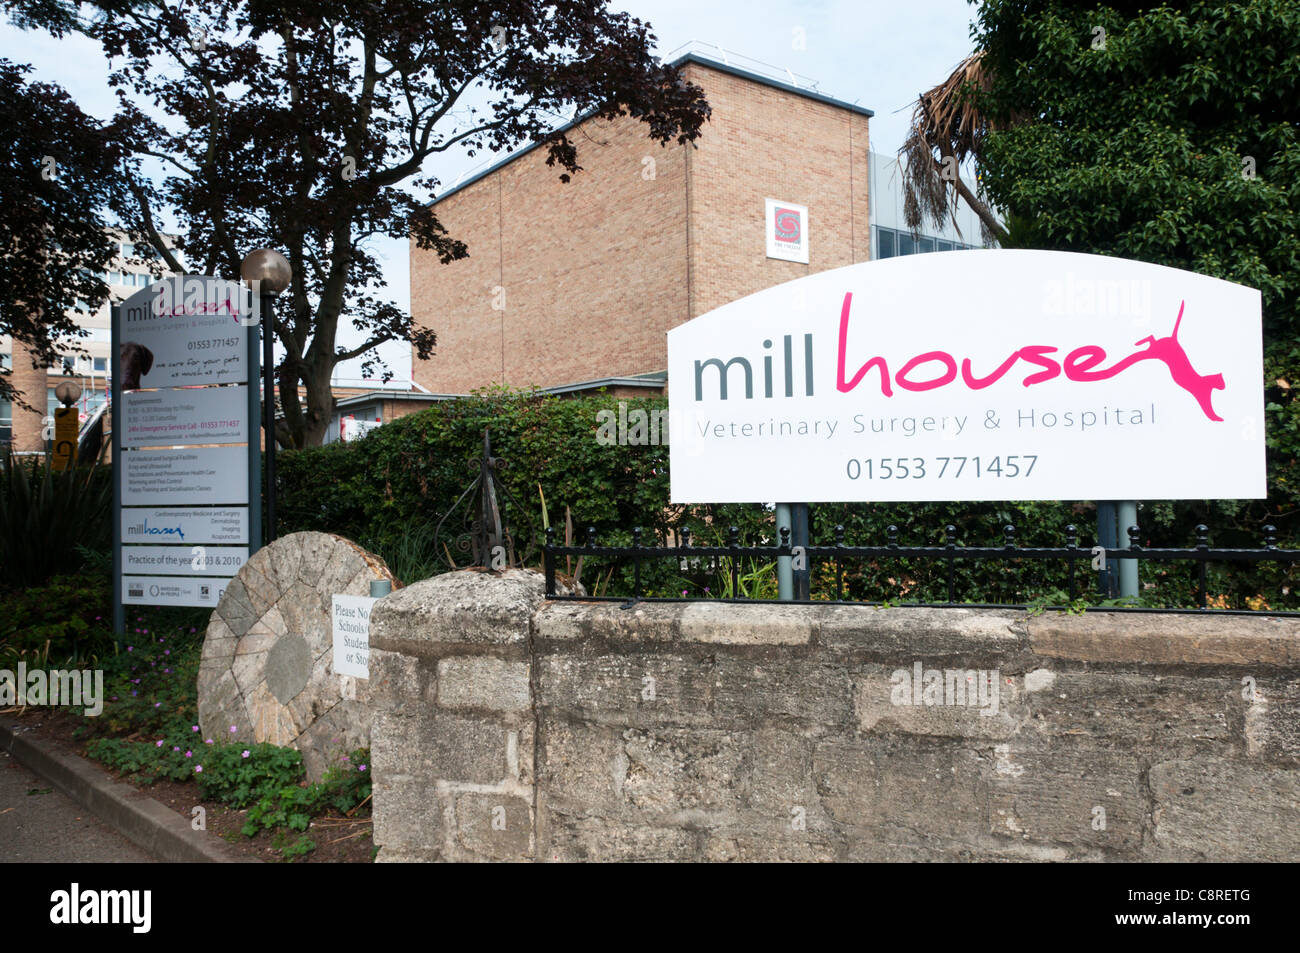 Sign for Millhouse Veterinary Surgeons. - Stock Image